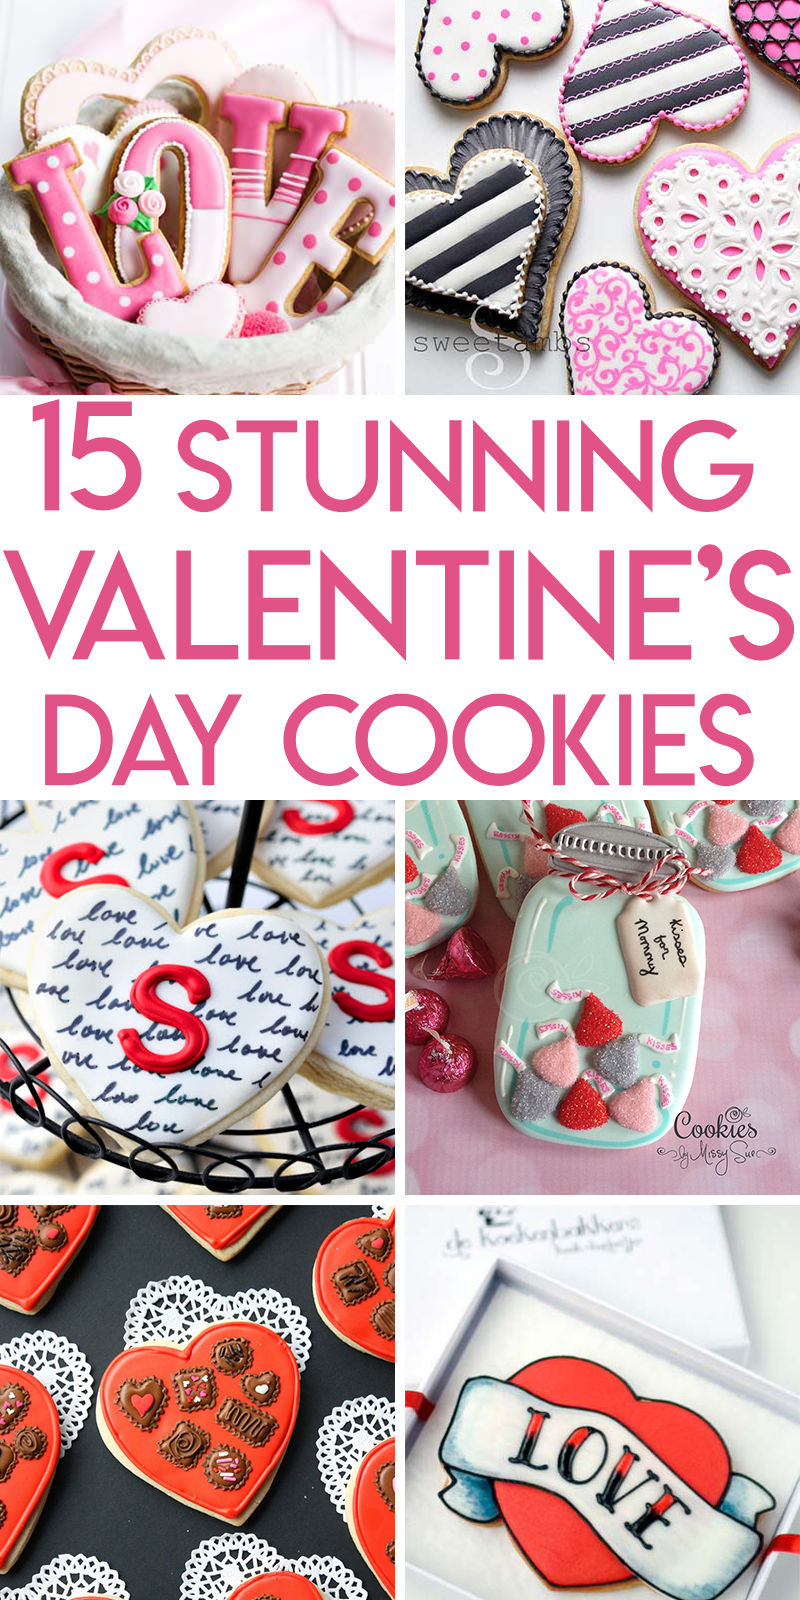 15 beautifully decorated valentine's day sugar cookies